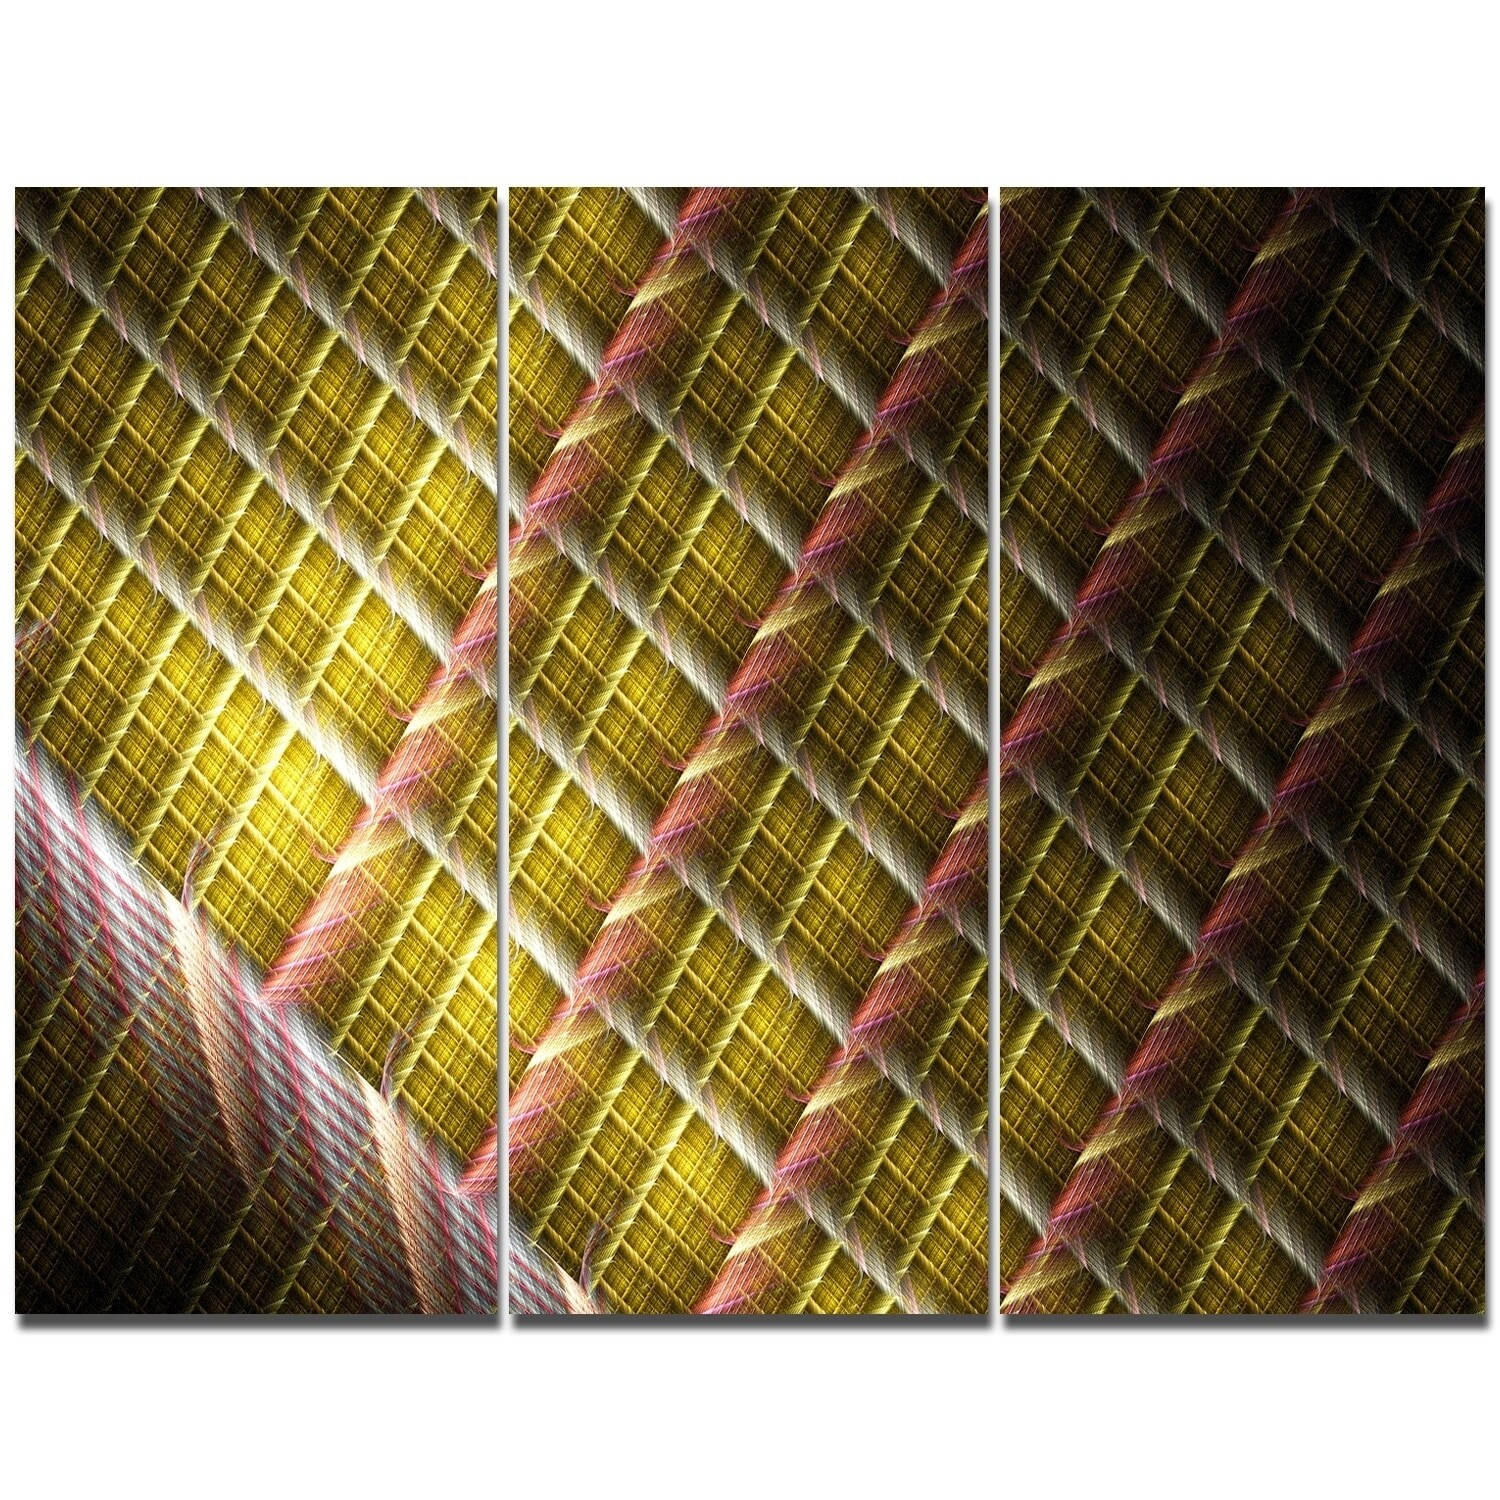 Shop Designart \'Brown Metal Protective Grids\' Triptych Canvas Art ...